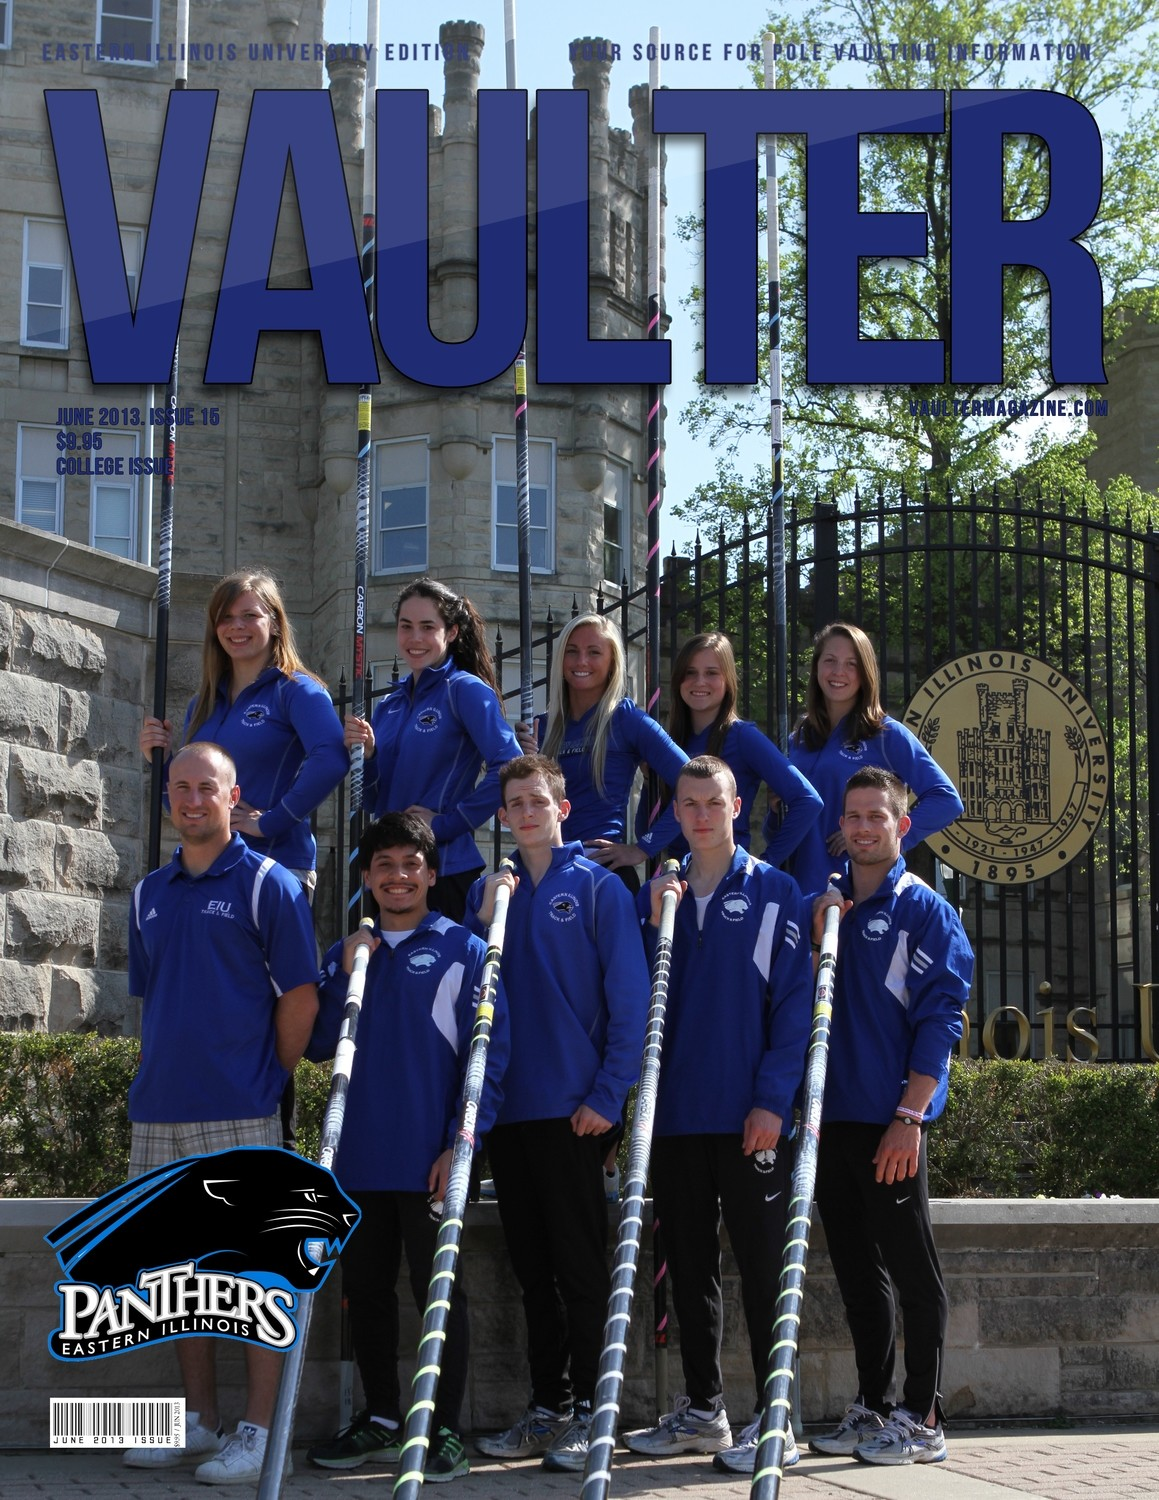 "12"" x 18"" Poster of Easter Illinois University Cover of VAULTER"